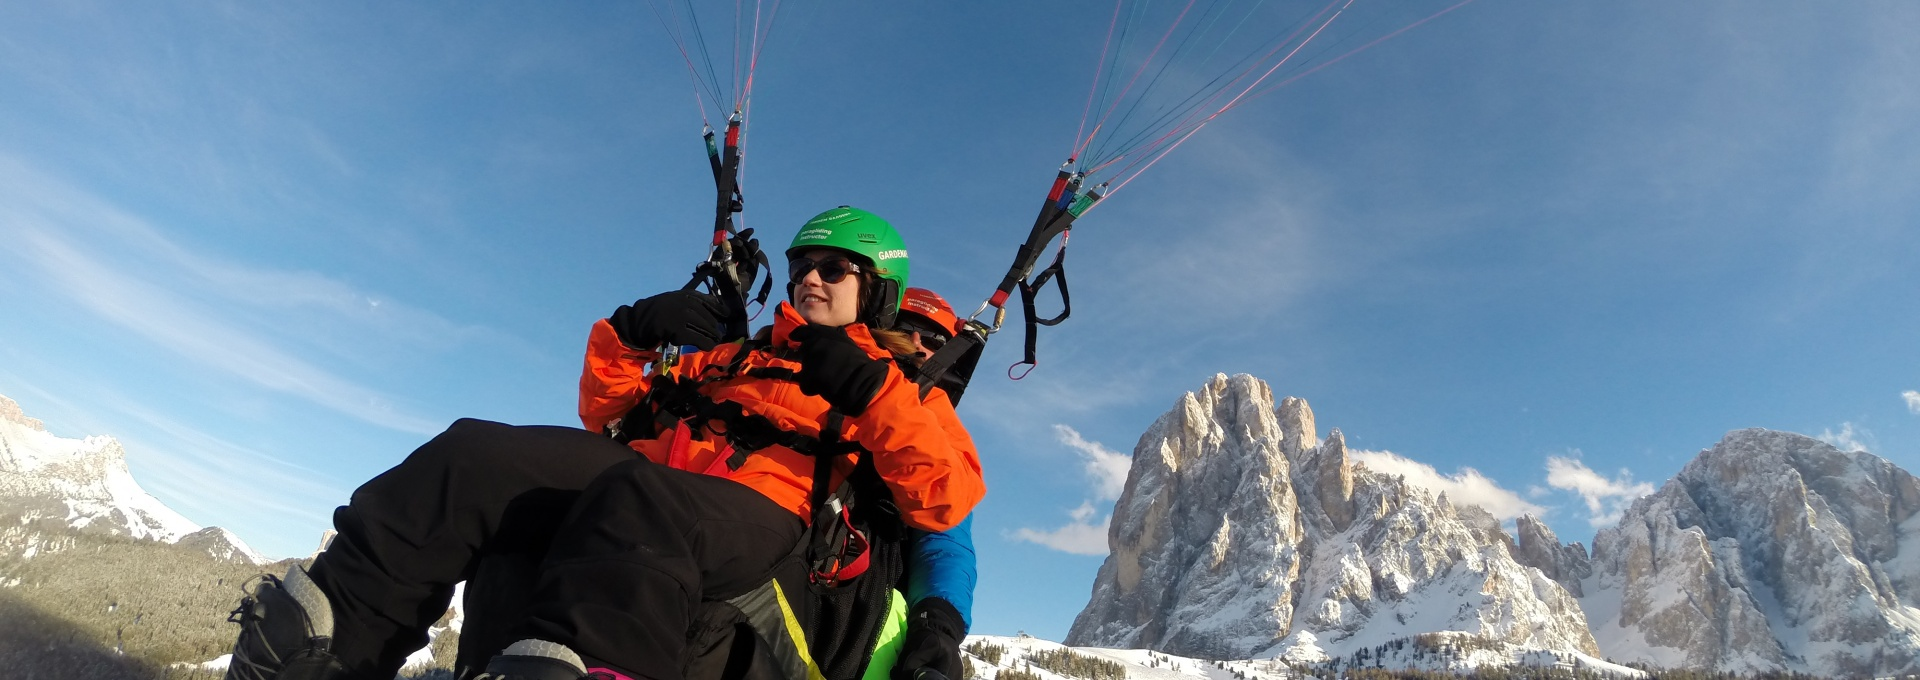 paragliding South Tyrol - Dolomites